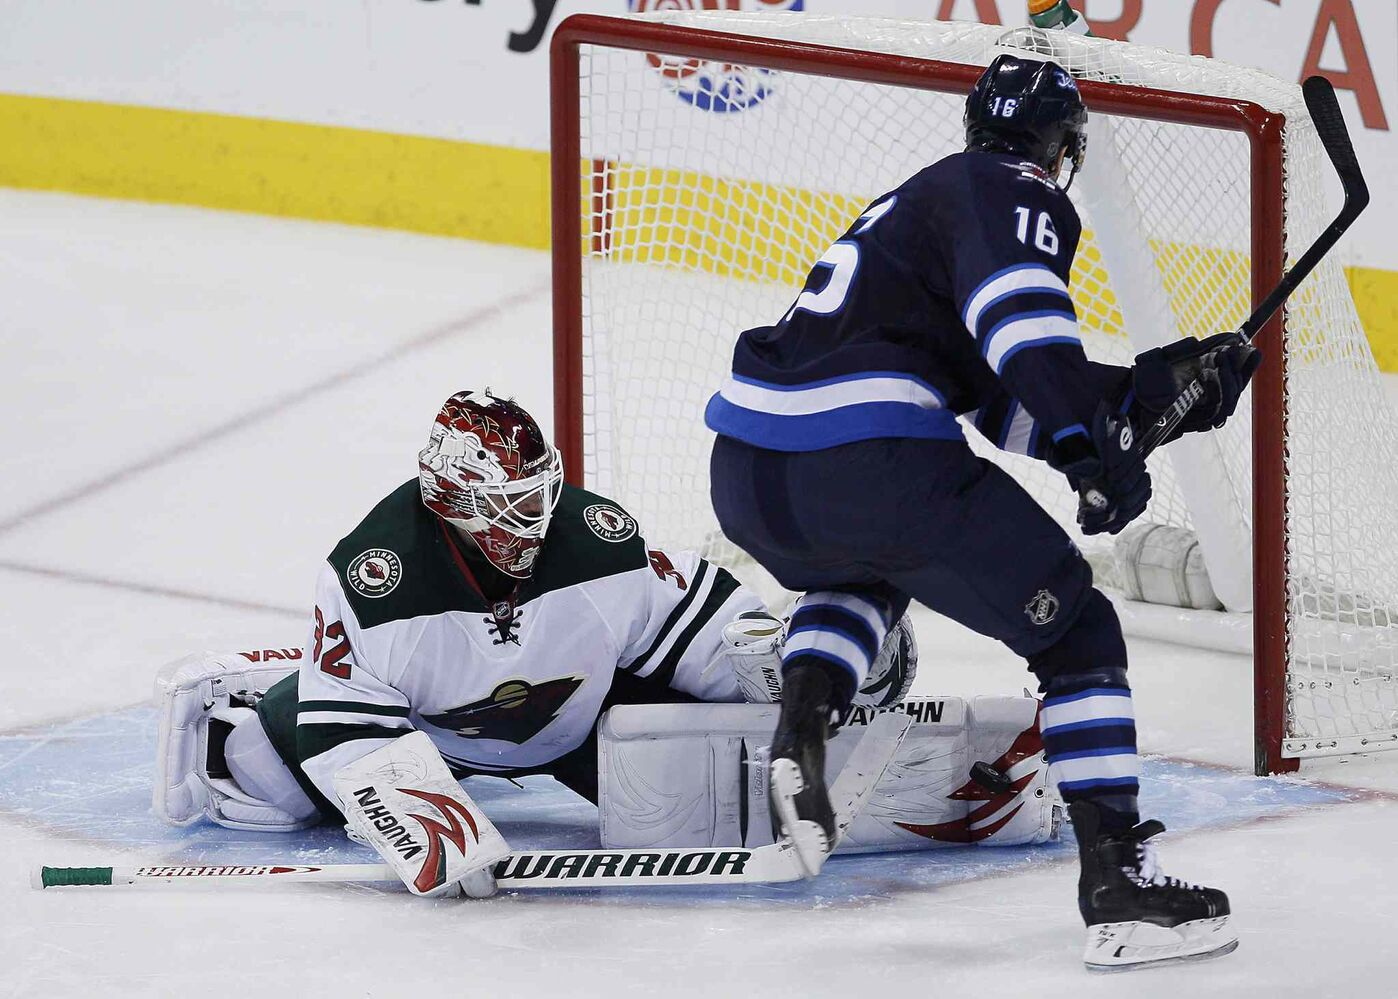 Winnipeg Jets forward Andrew Ladd is stopped by Minnesota Wild goaltender Niklas Backstrom during the shootout. (JOHN WOODS / THE CANADIAN PRESS)